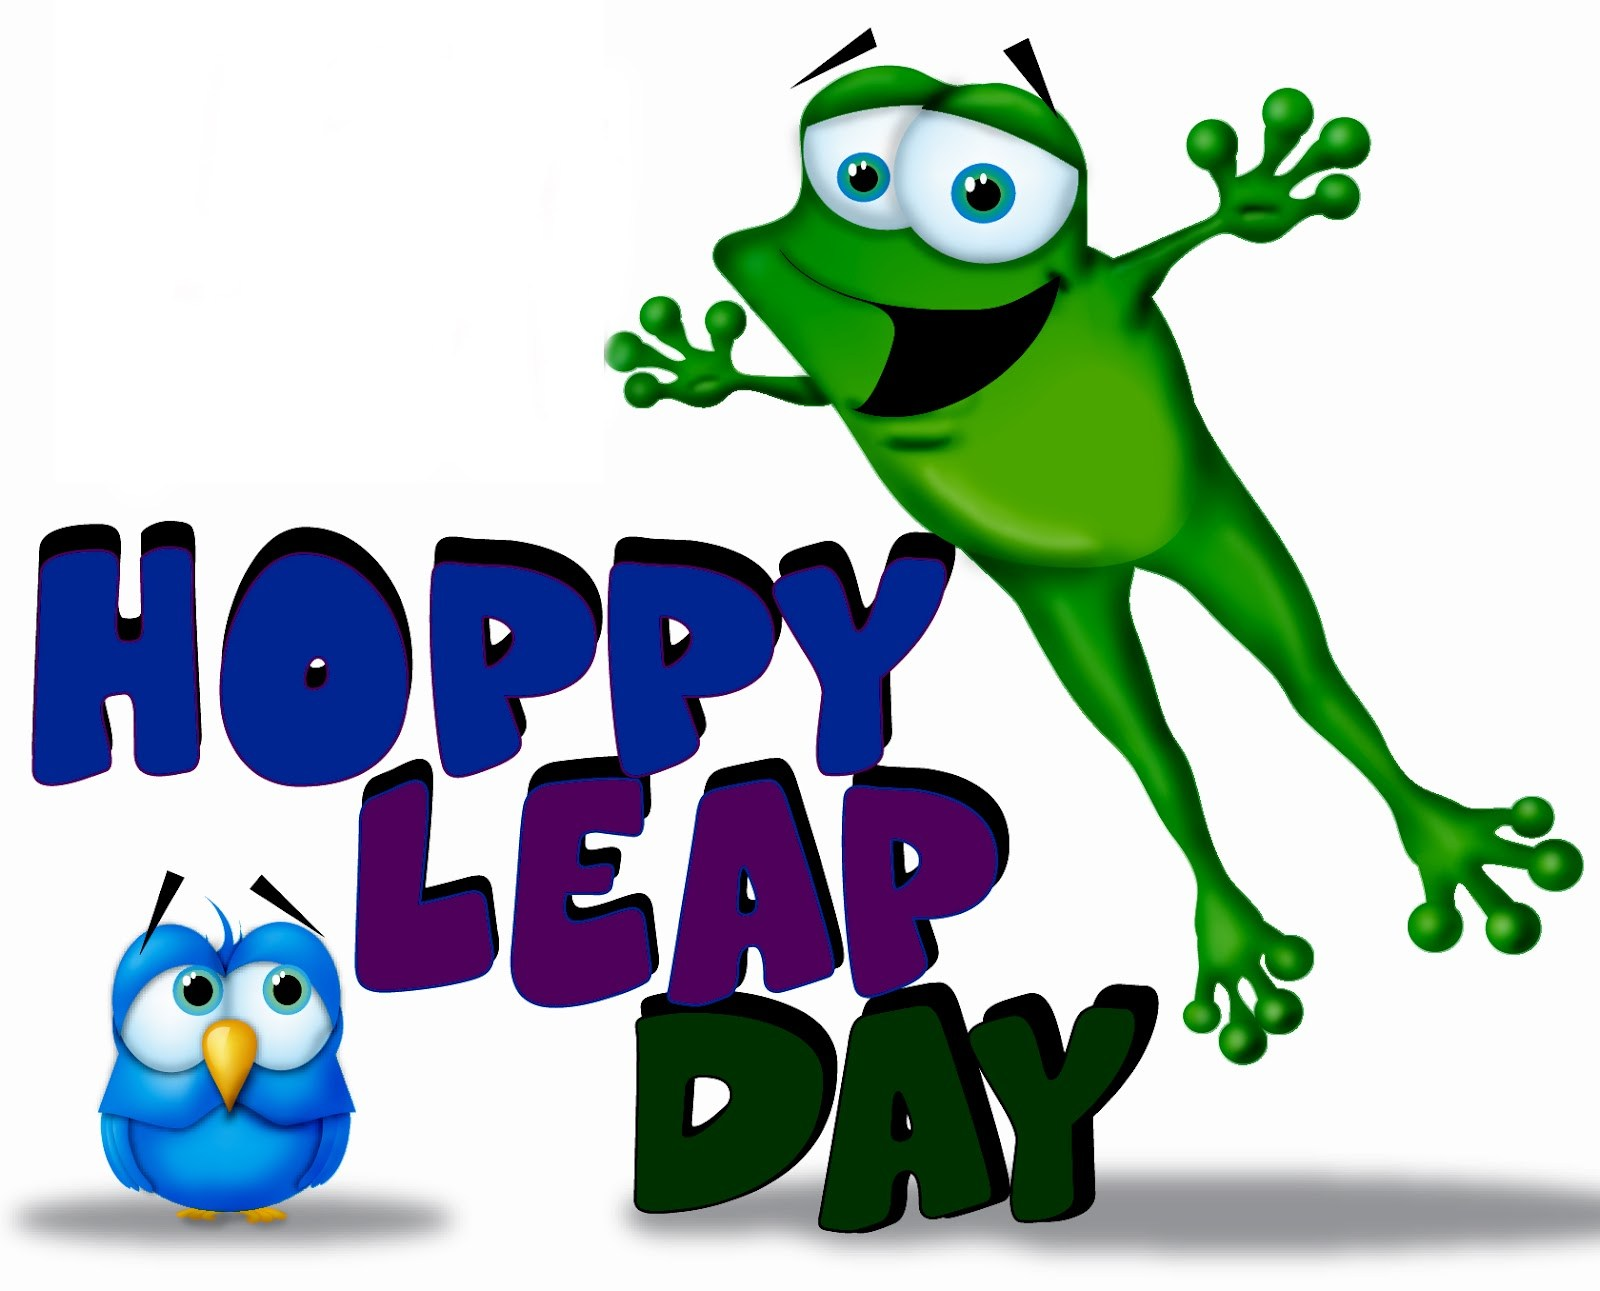 Hoppy Leap Year!.